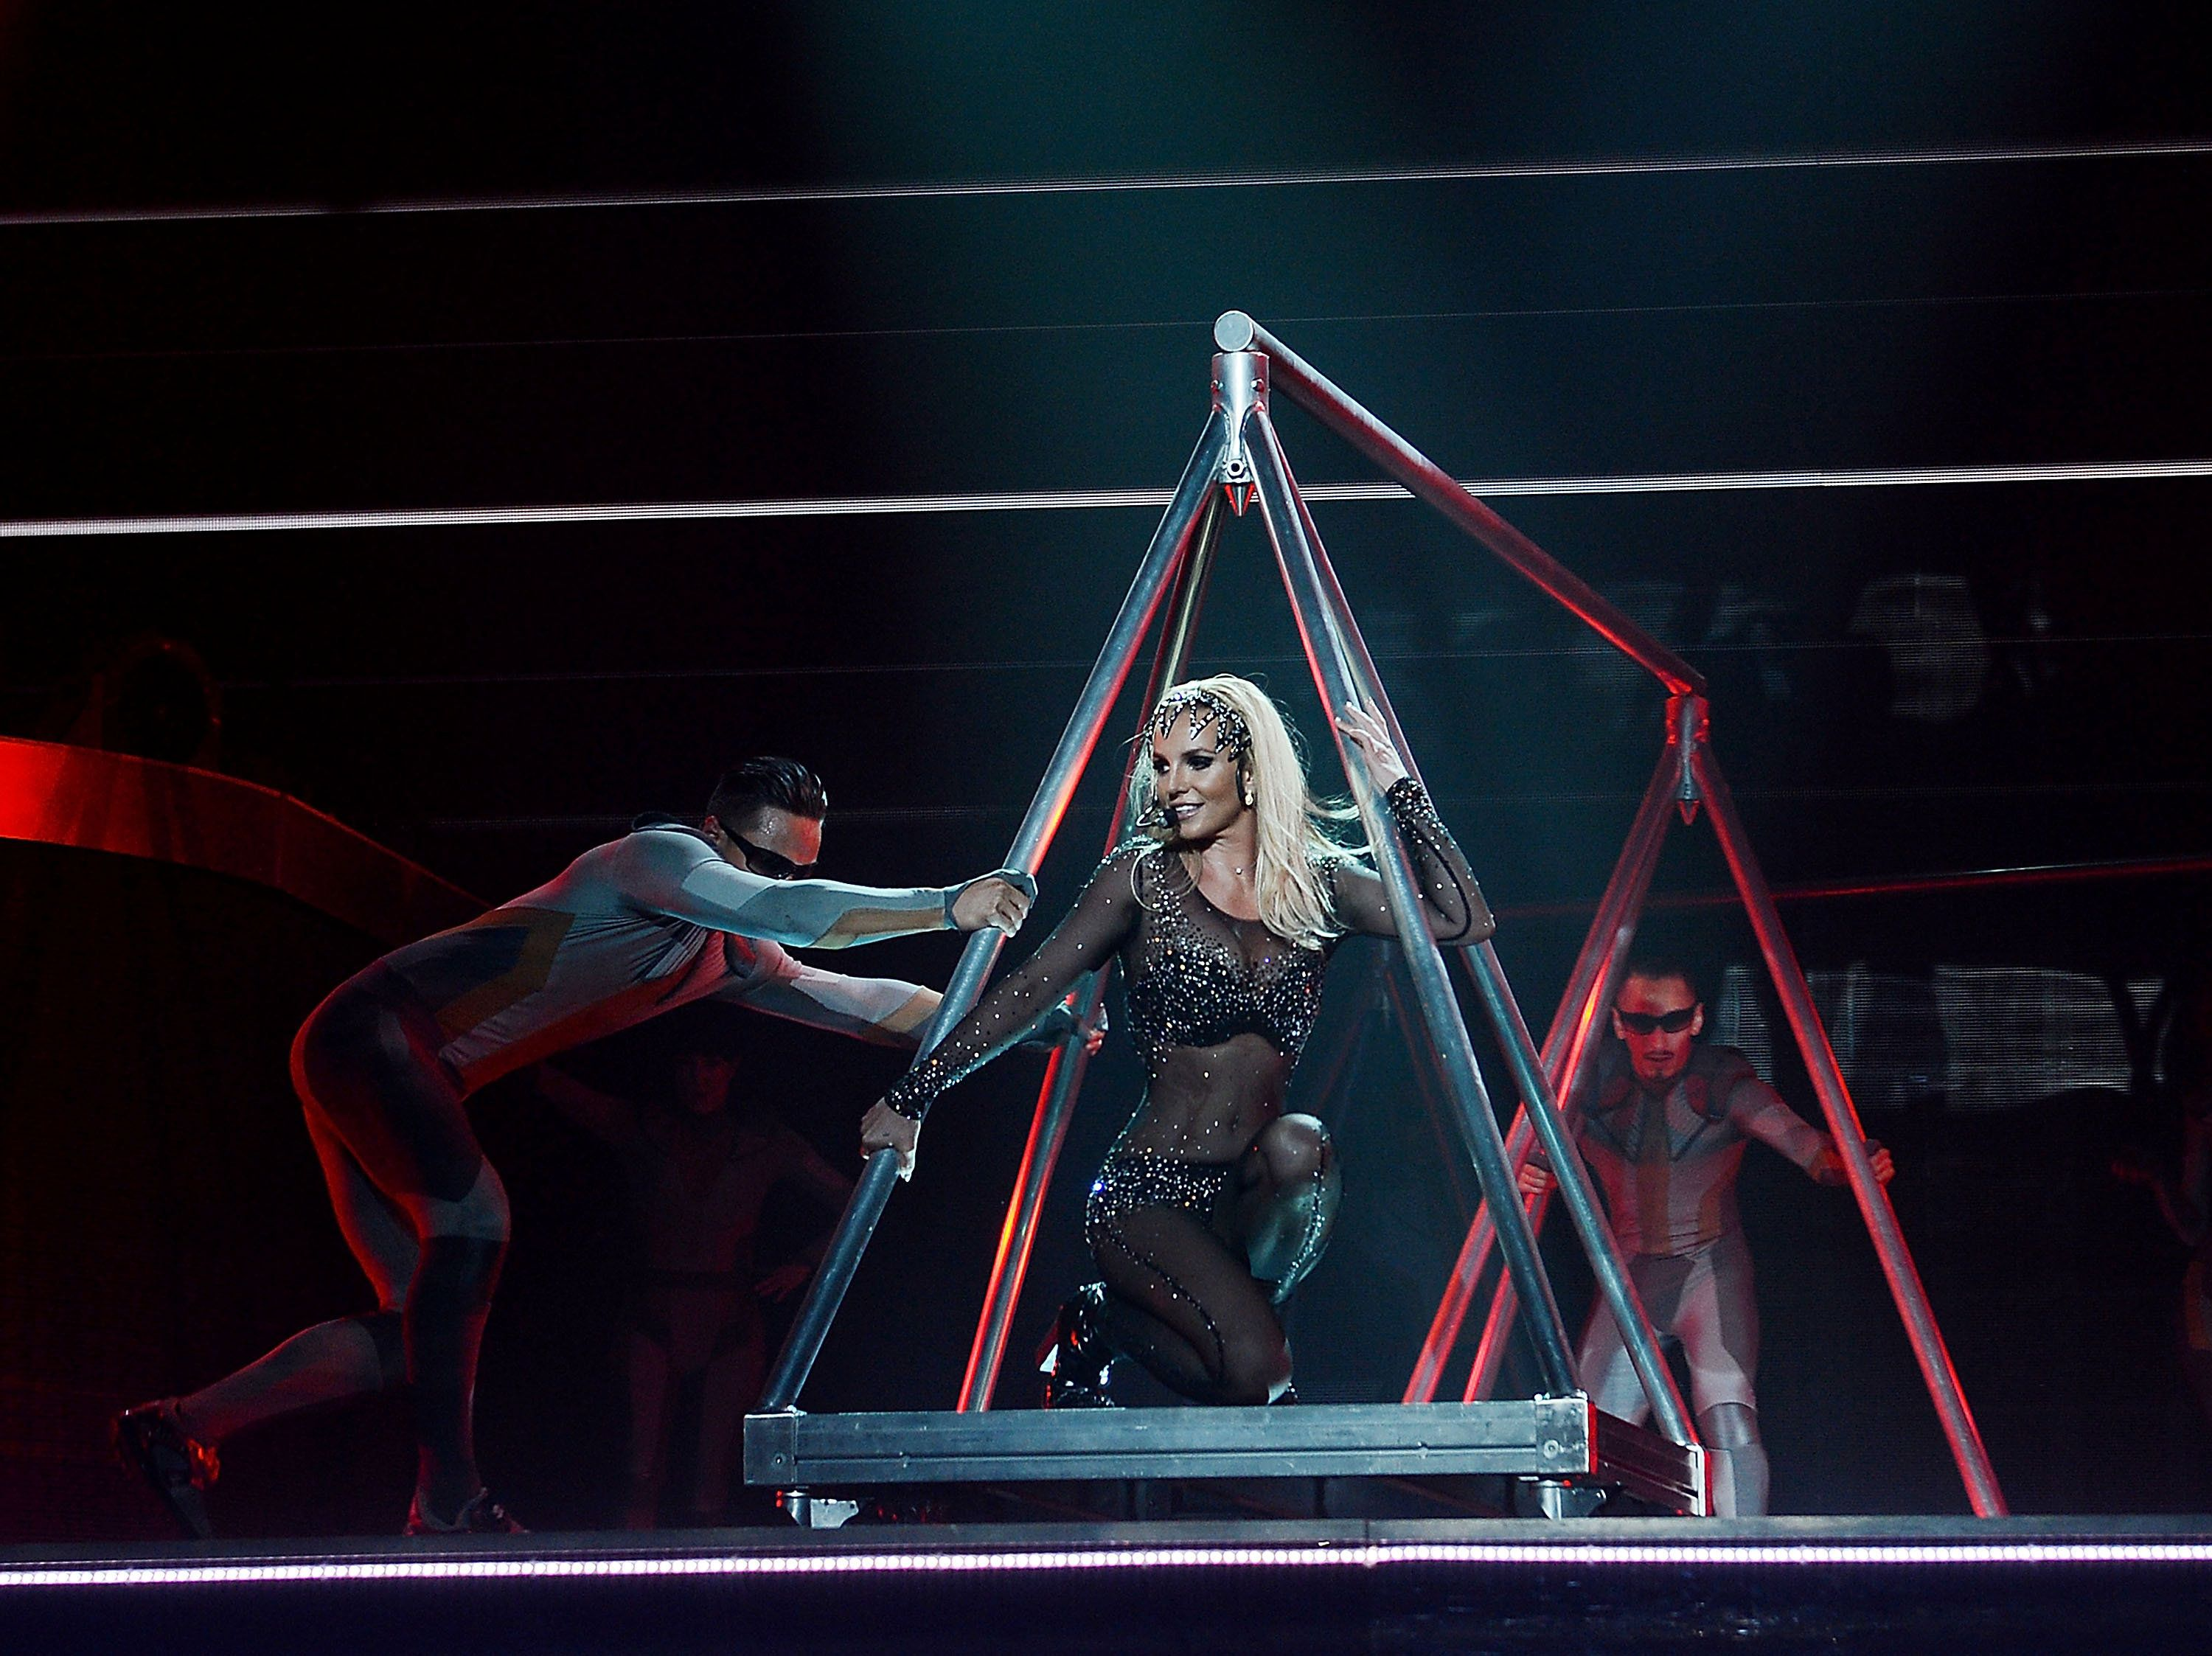 LAS VEGAS, NV - MARCH 04:  (EXCLUSIVE COVERAGE) Britney Spears performs at her 'Britney: Piece Of Me' show at Planet Hollywood Casino Resort on March 4, 2015 in Las Vegas, Nevada.  (Photo by Denise Truscello/BSLV/Getty Images for Brandcasting, Inc)